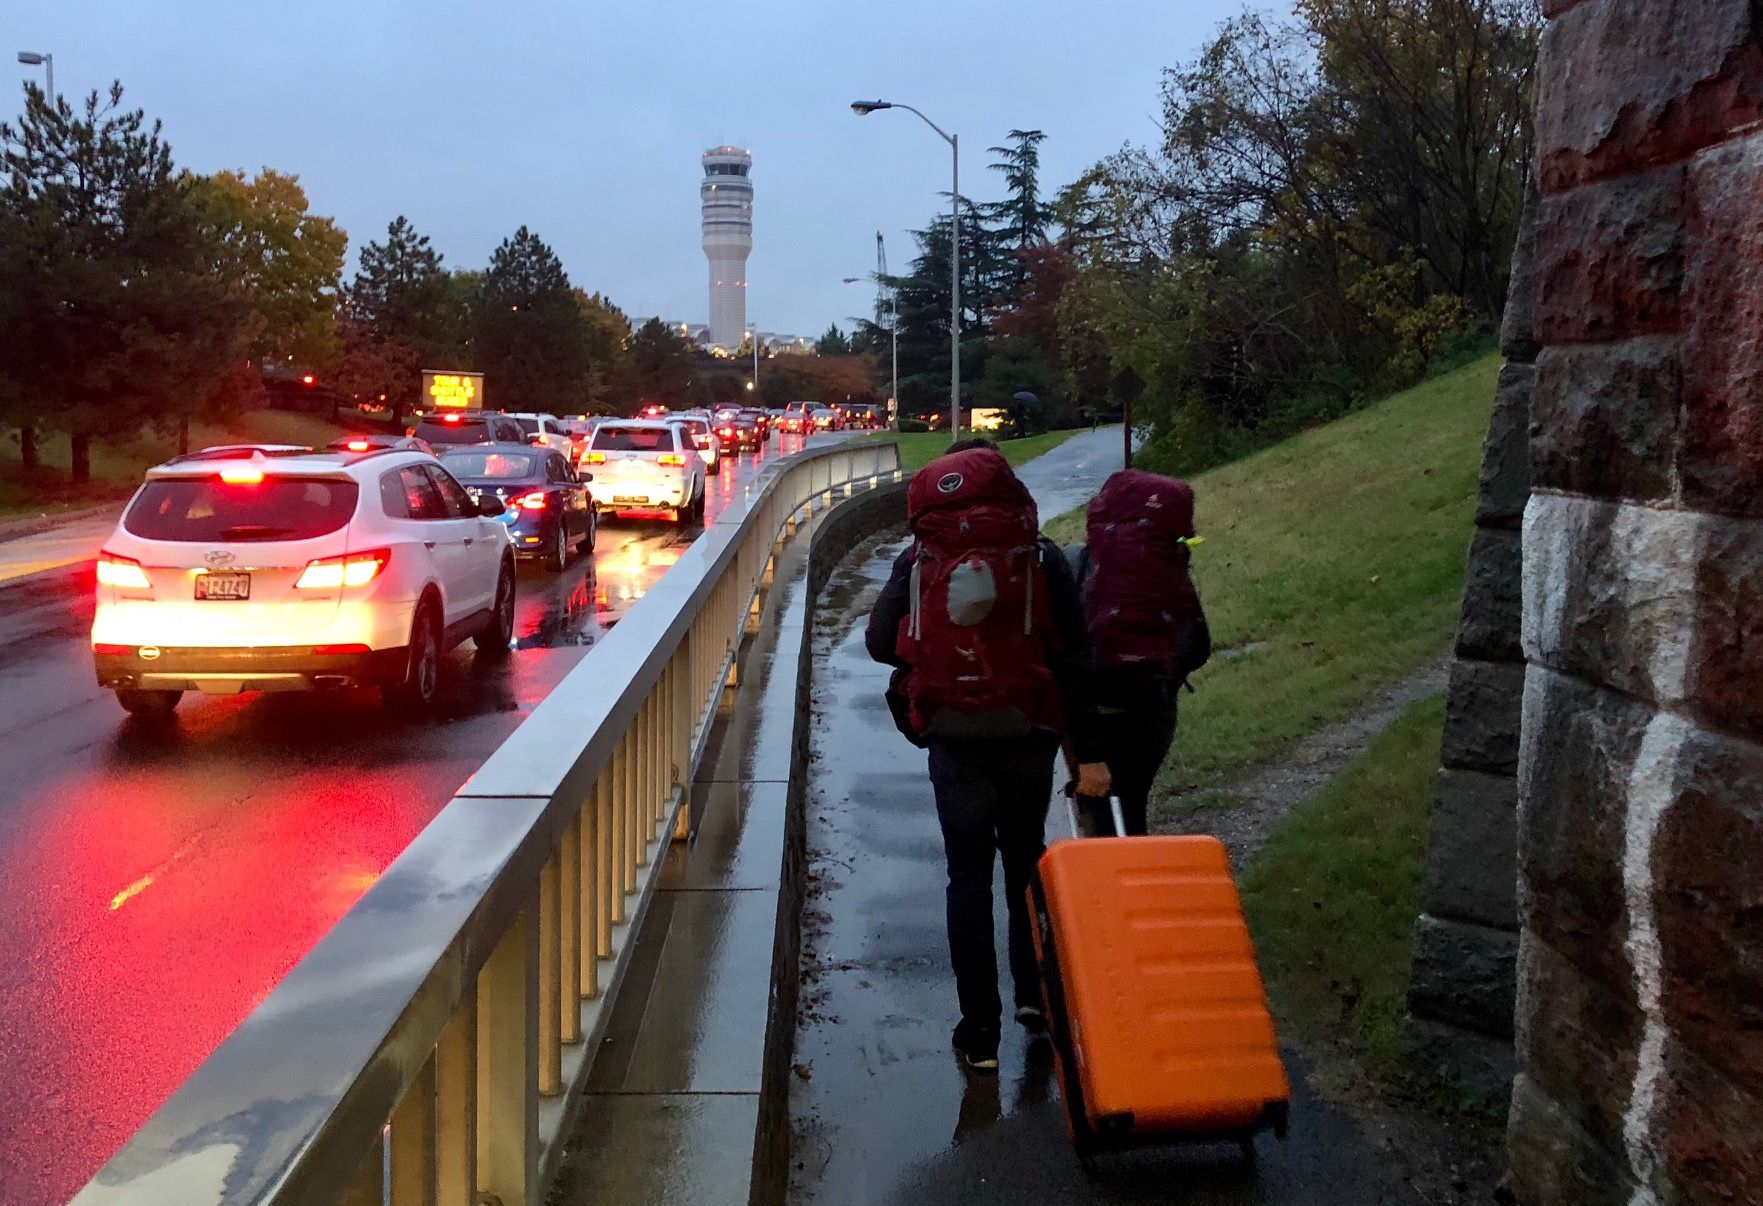 Travelers bailing out of cars on foot and rushing to departures dragging suitcases behind (WTOP/Dave Dildine)